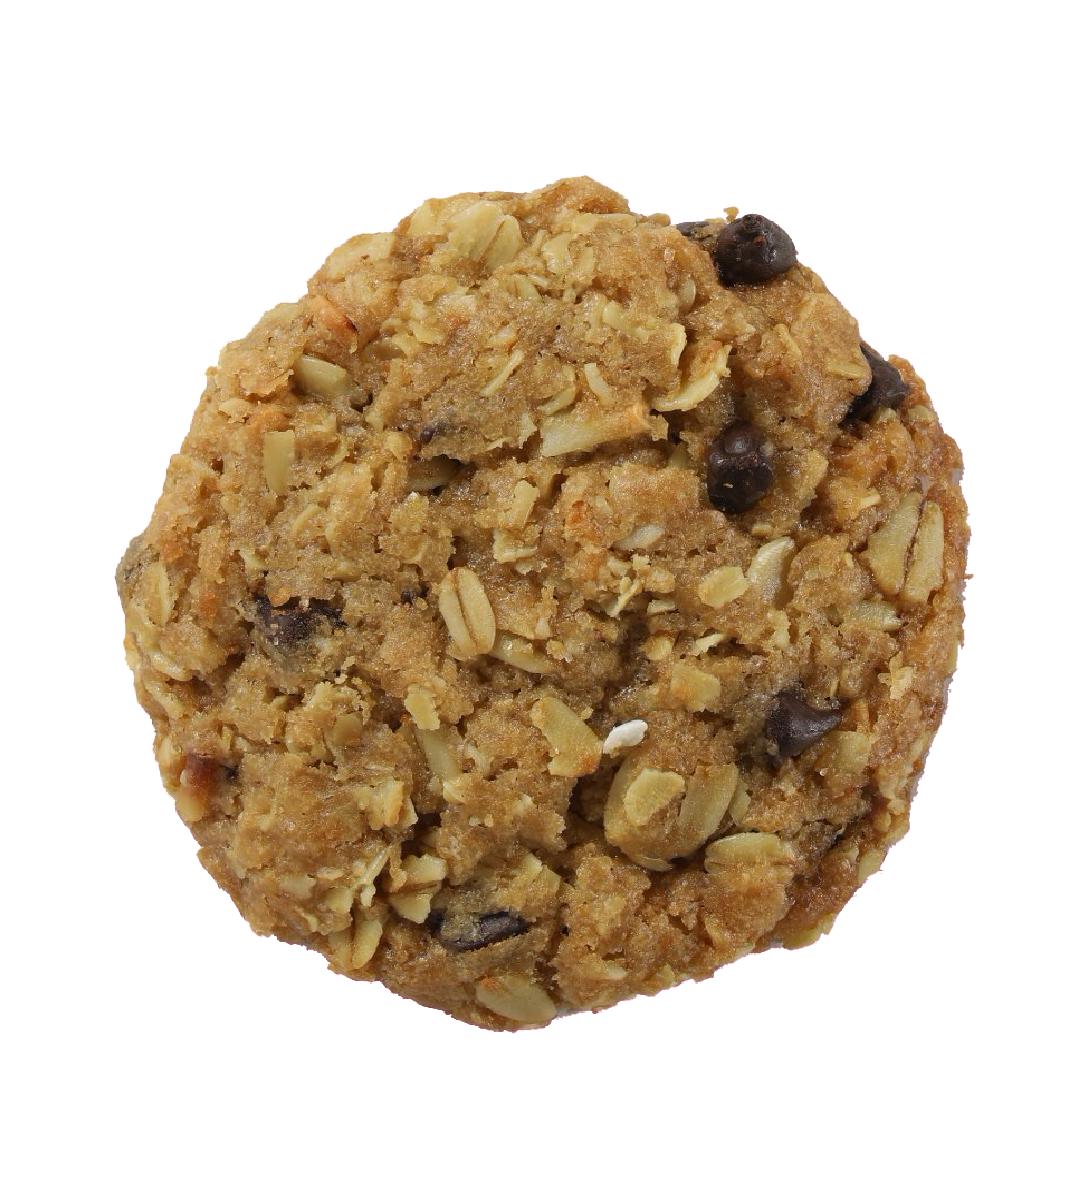 https://livingfood.co/collections/vegan-guilt-free-dessserts/products/oatmeal-chocolate-chip-cookie